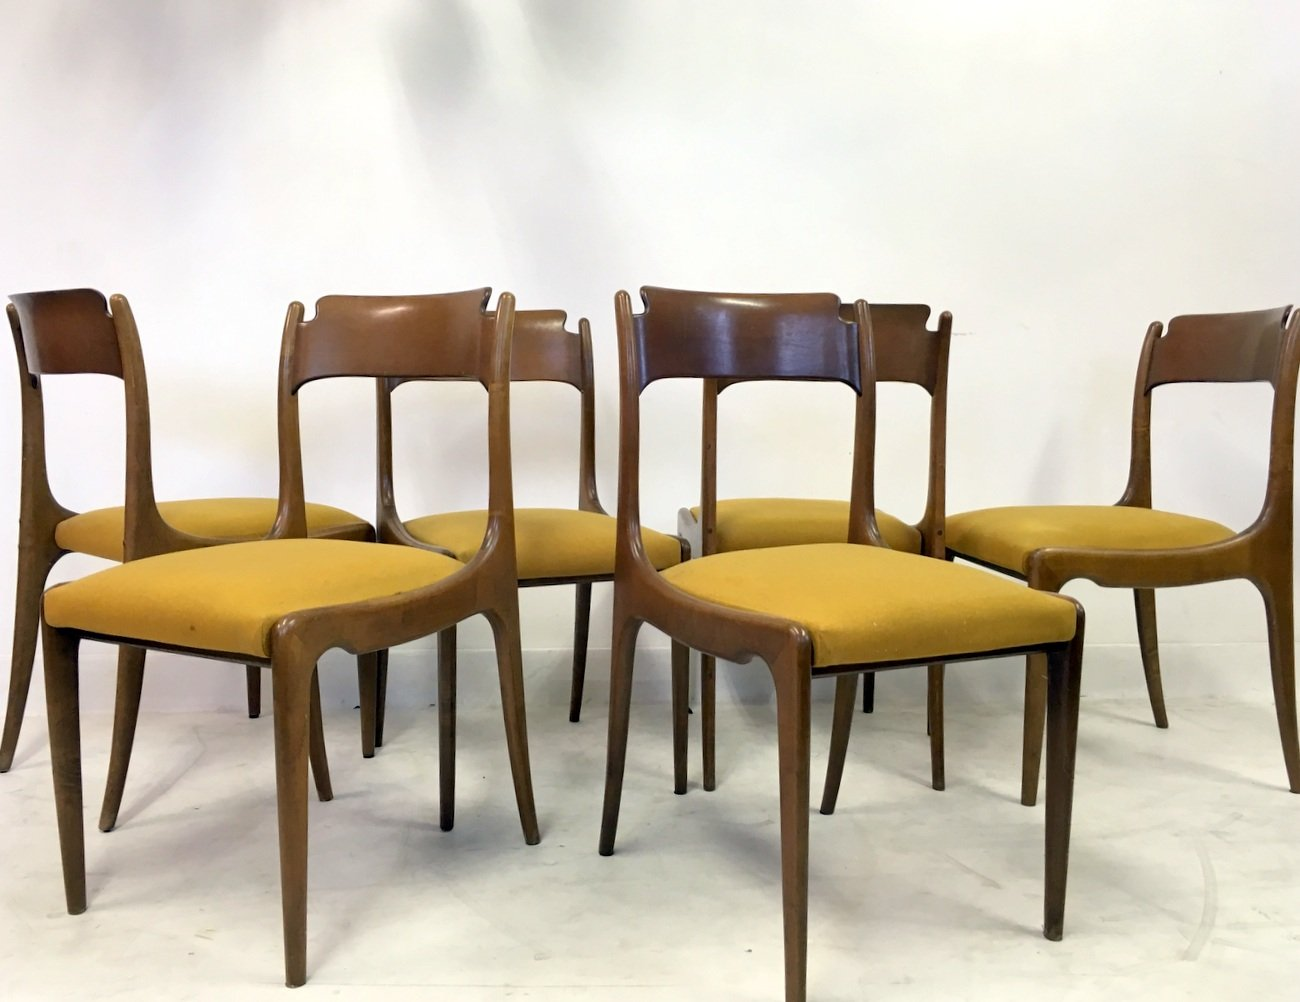 mid century italian dining chairs 1950s set of 6 for sale at pamono mid century italian dining chairs 1950s set of 6